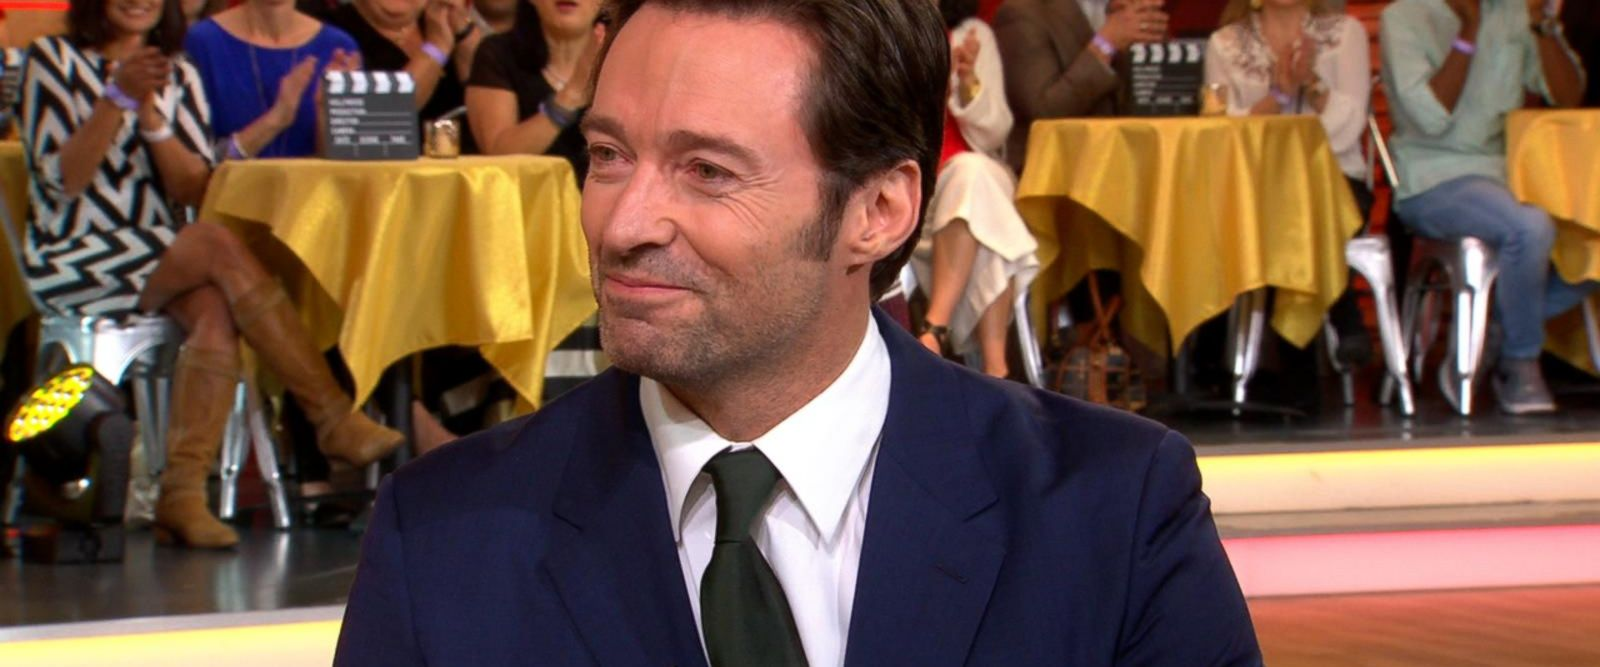 VIDEO: Hugh Jackman dishes on beating skin cancer and his upcoming film 'Logan'